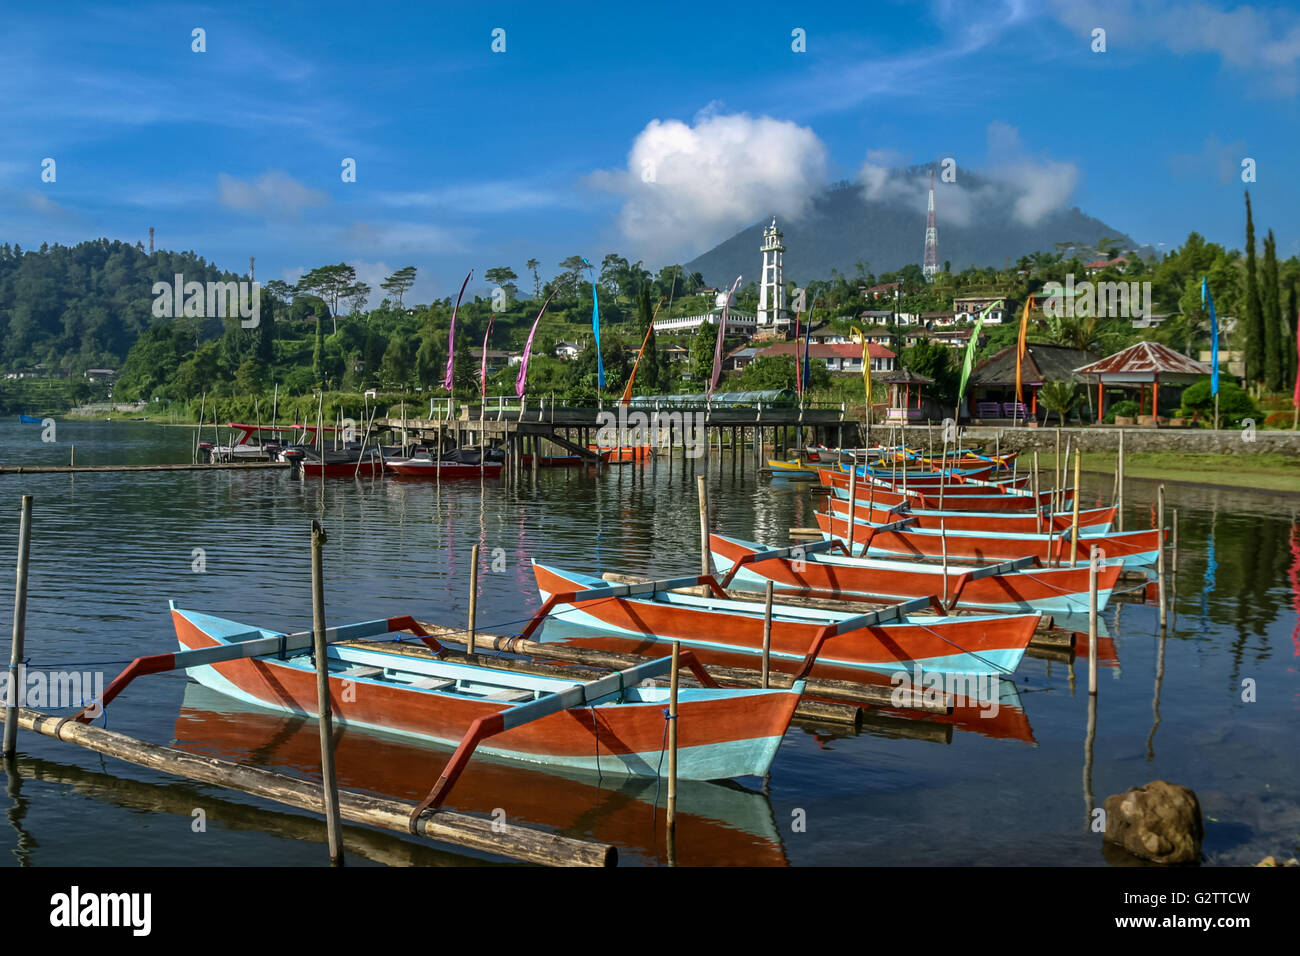 Indonesia Bali Bedegul Boats on Lake Bratan, a volcanic crater lake at Bedegul, in Bali's mountainous interior with Stock Photo